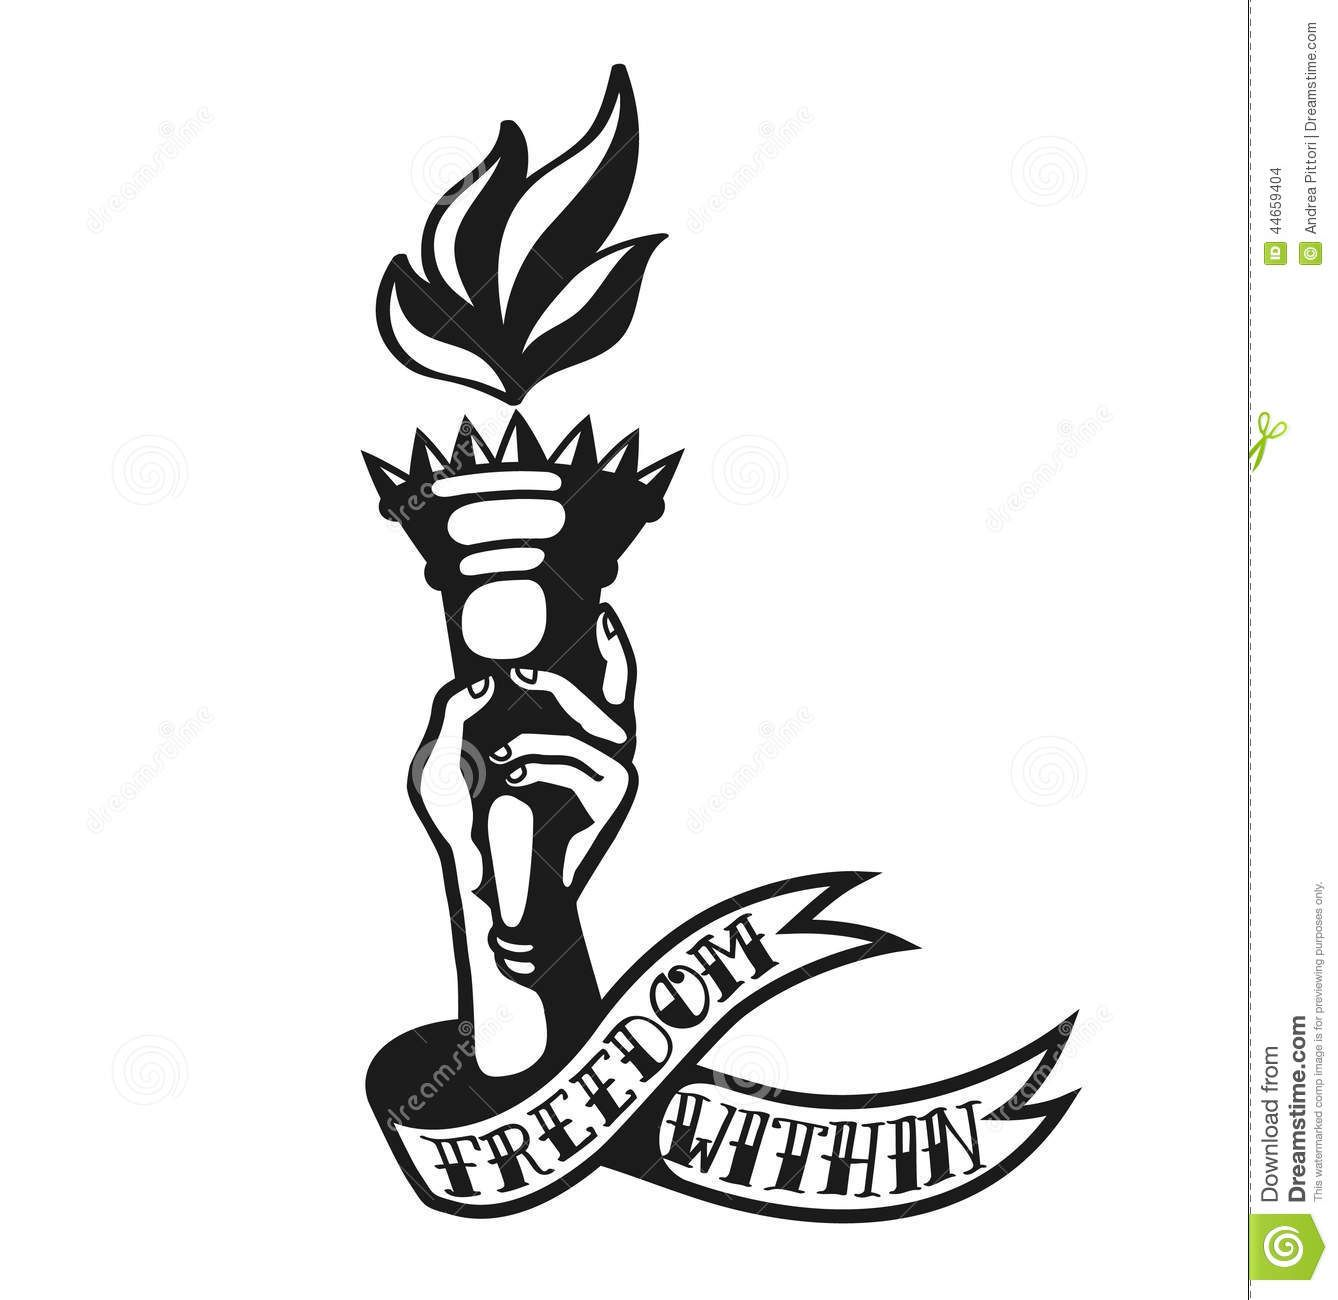 clipart transparent library Freedom within cool design. Liberty clipart tattoo.